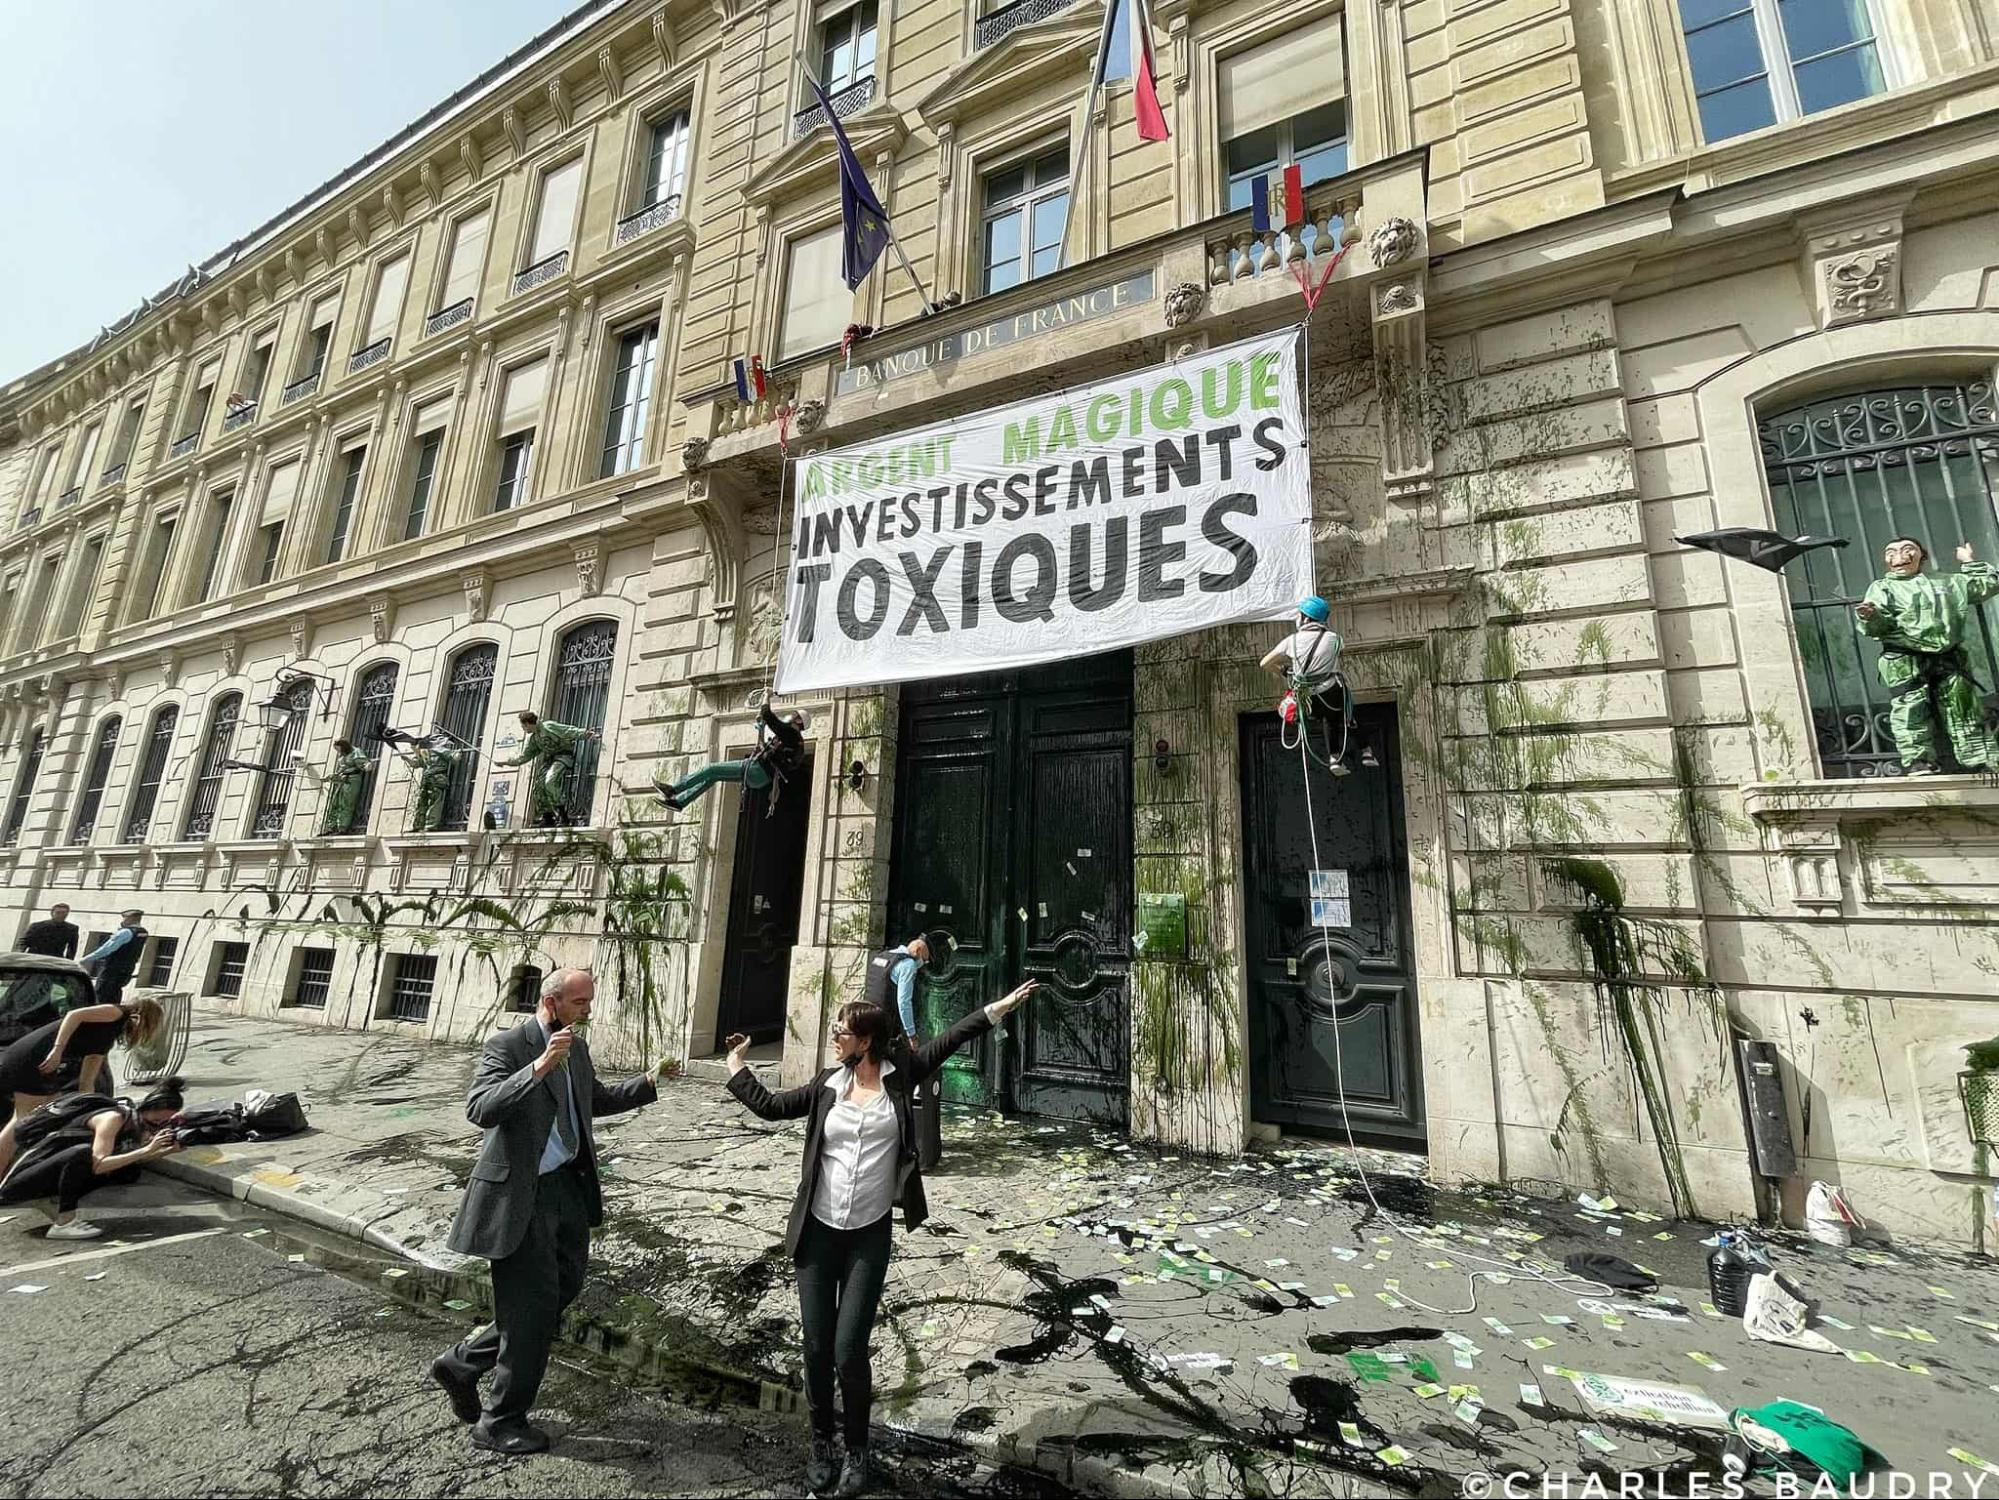 Paris, France. The Bank of France gets a makeover to match its dirty oil investments.